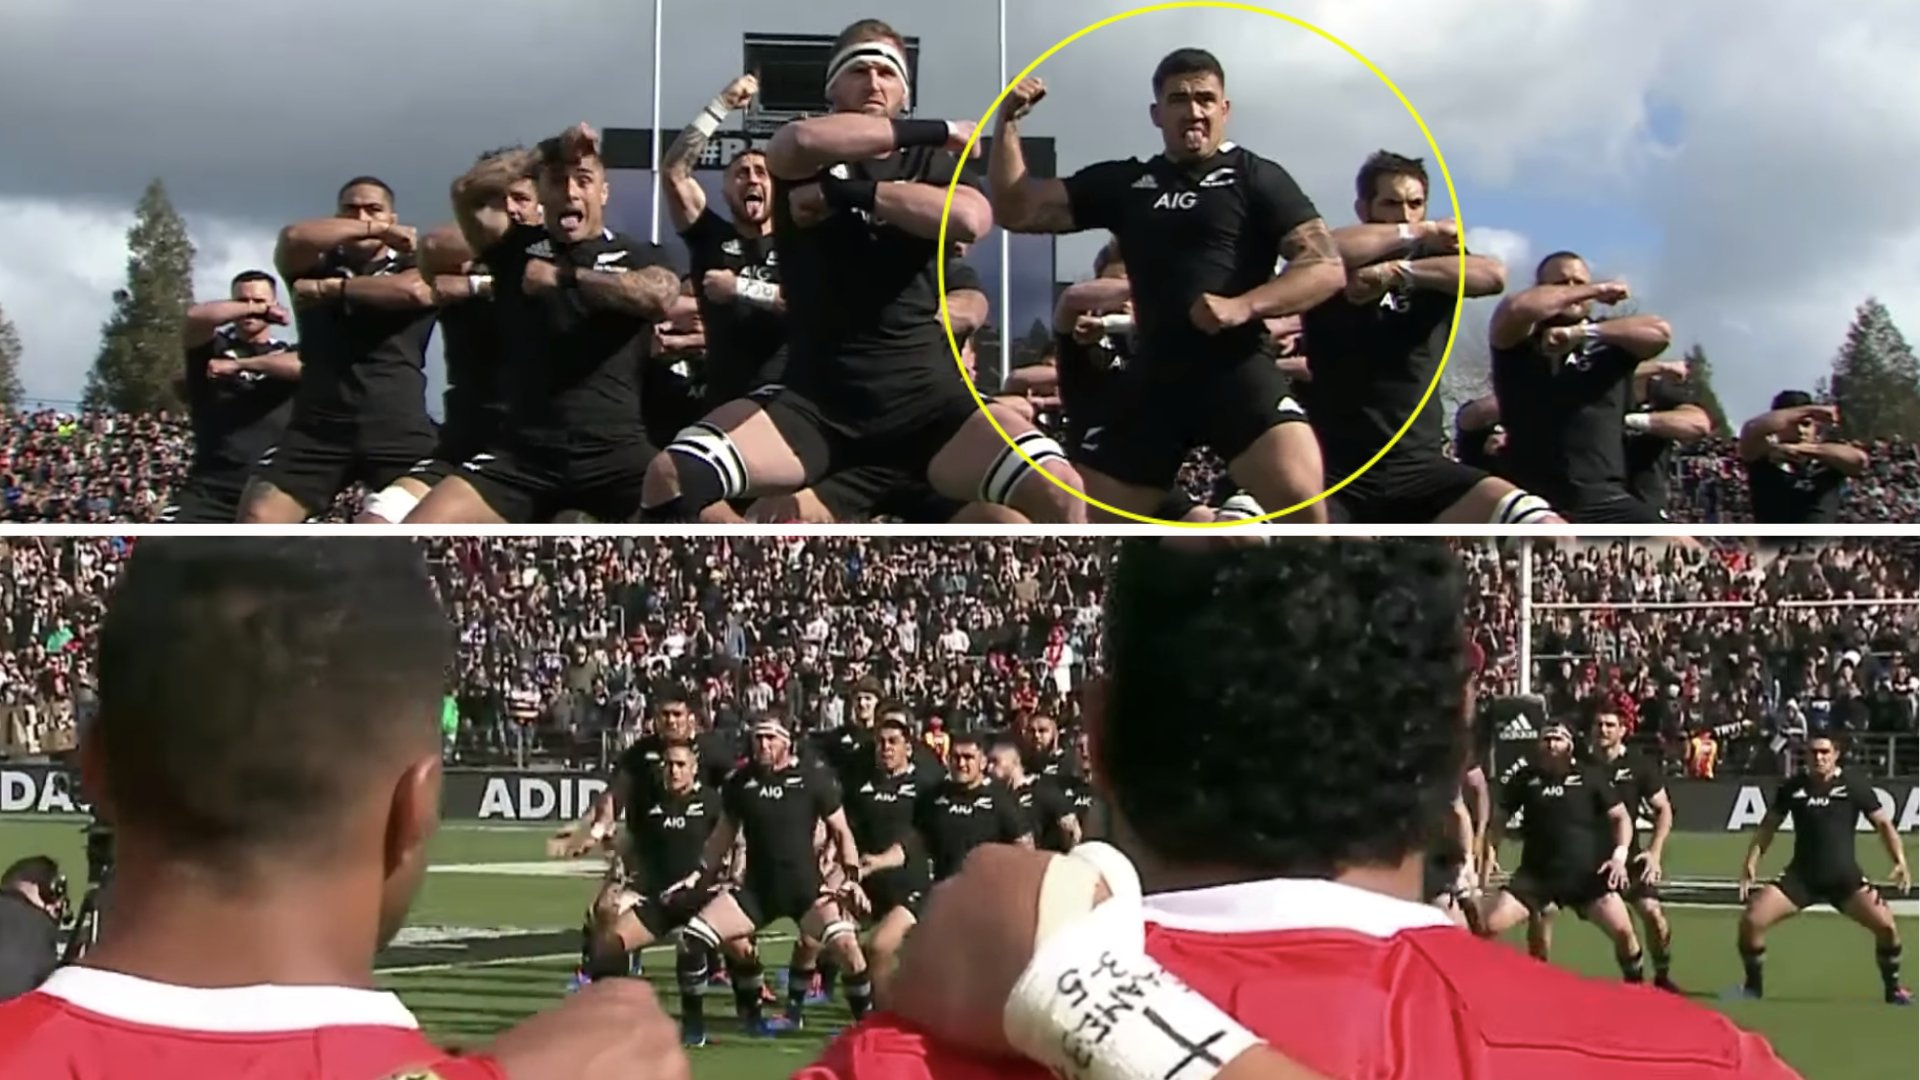 Lots of people are talking about the haka between New Zealand and Tonga